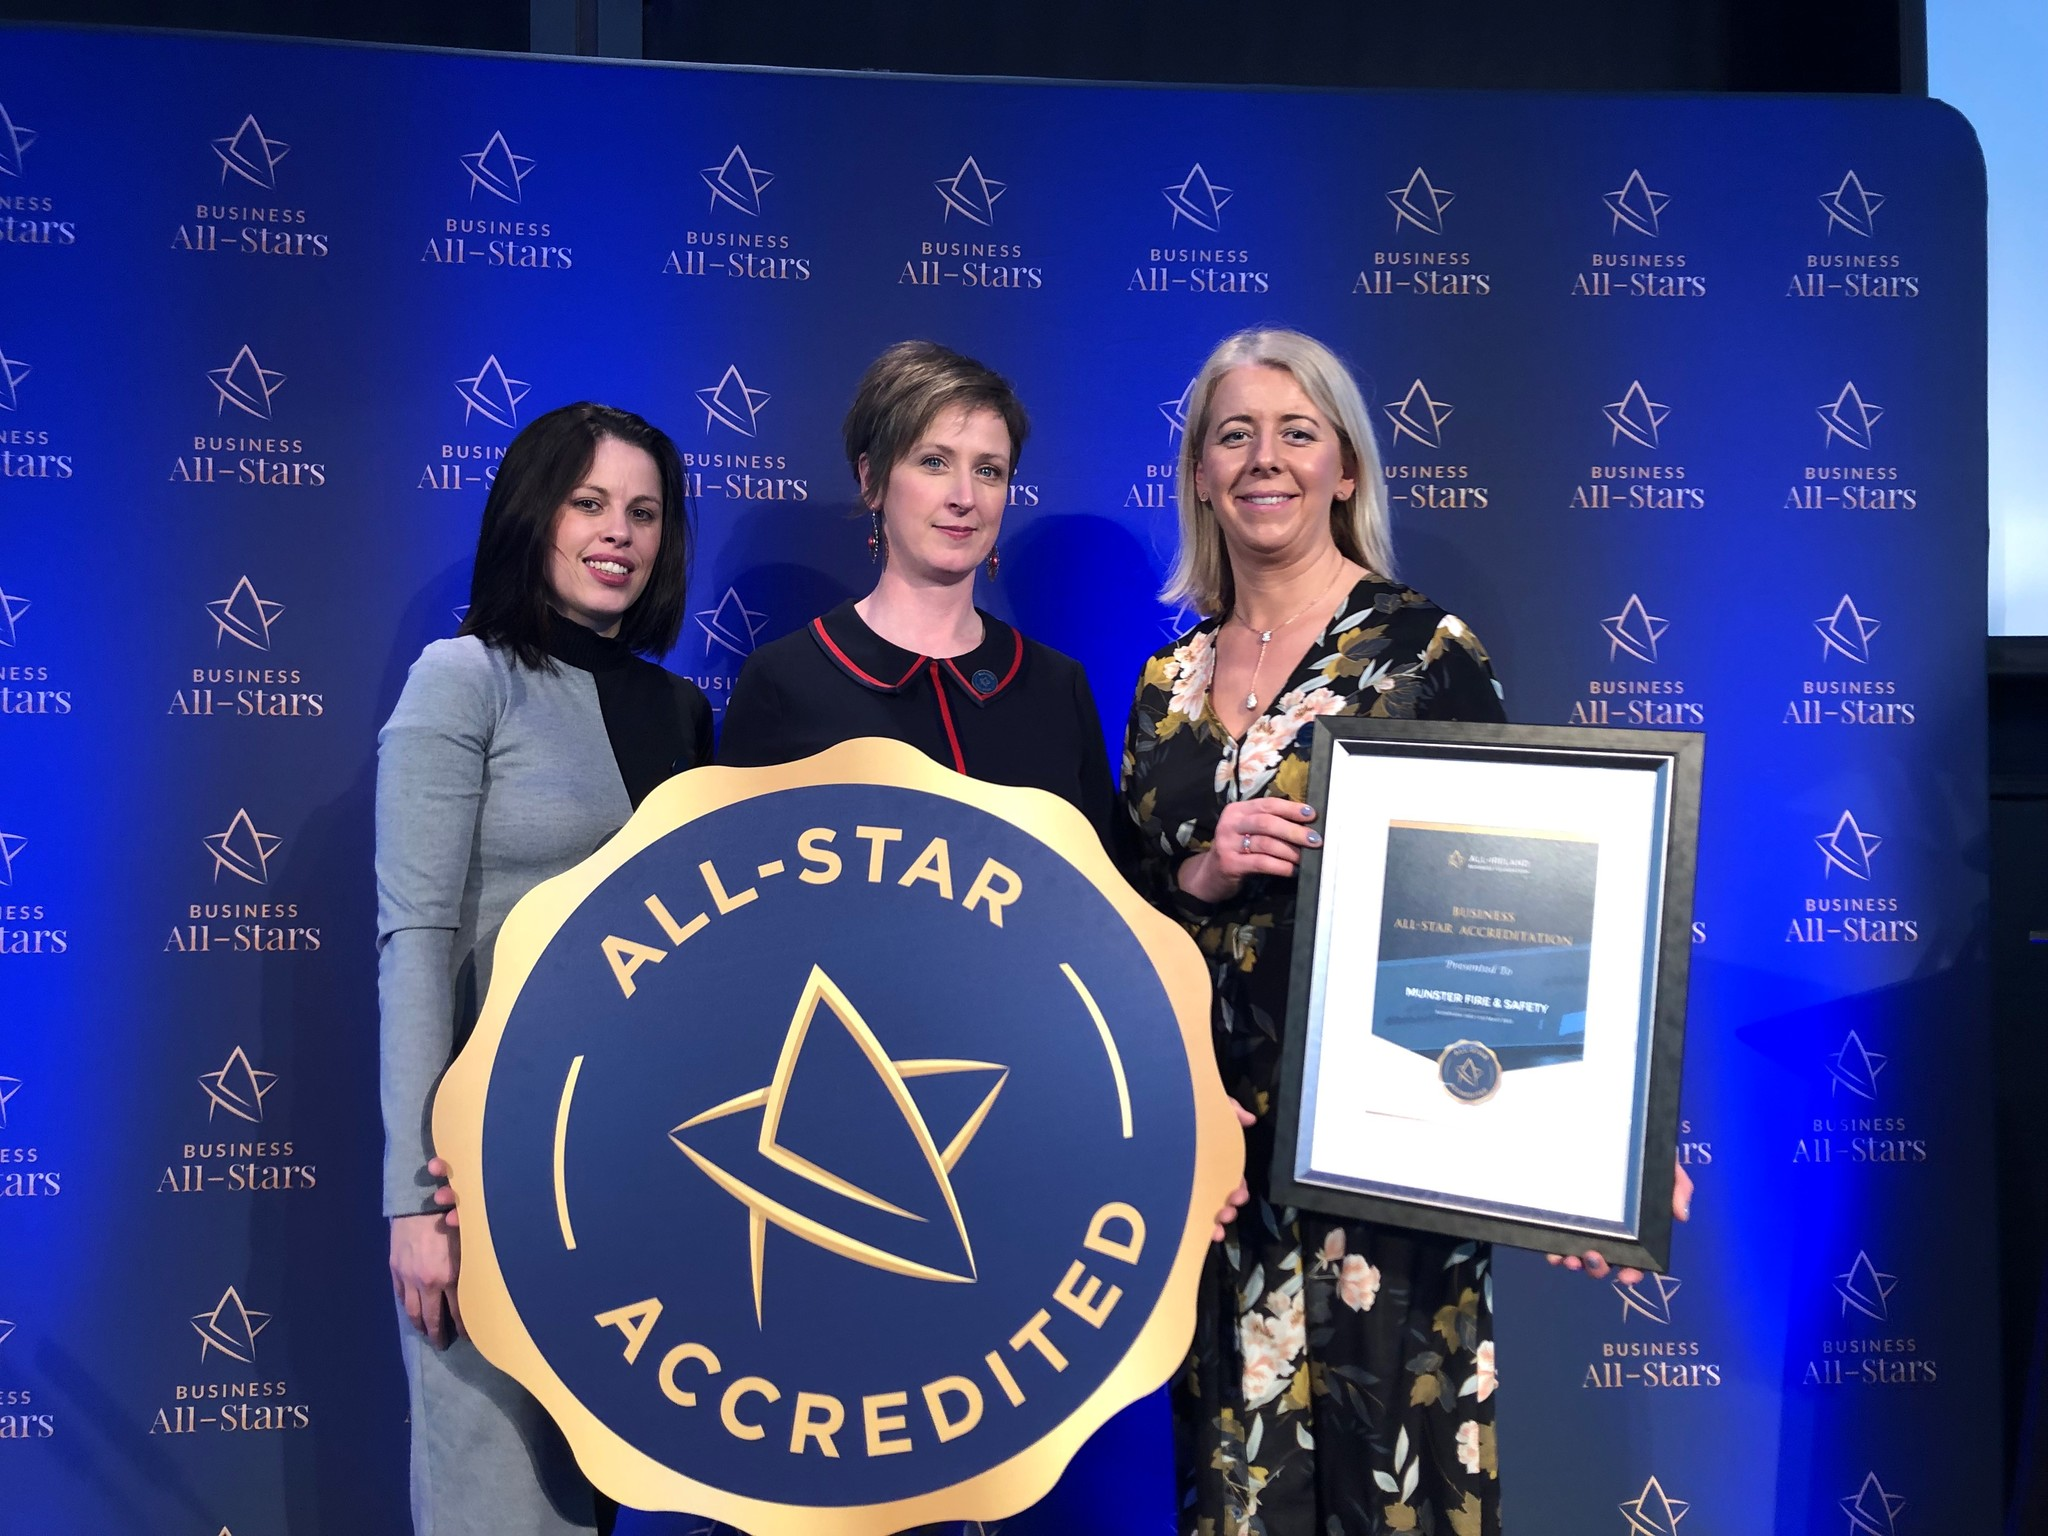 Jackie, Claire & Eileen receiving the All-Star Award